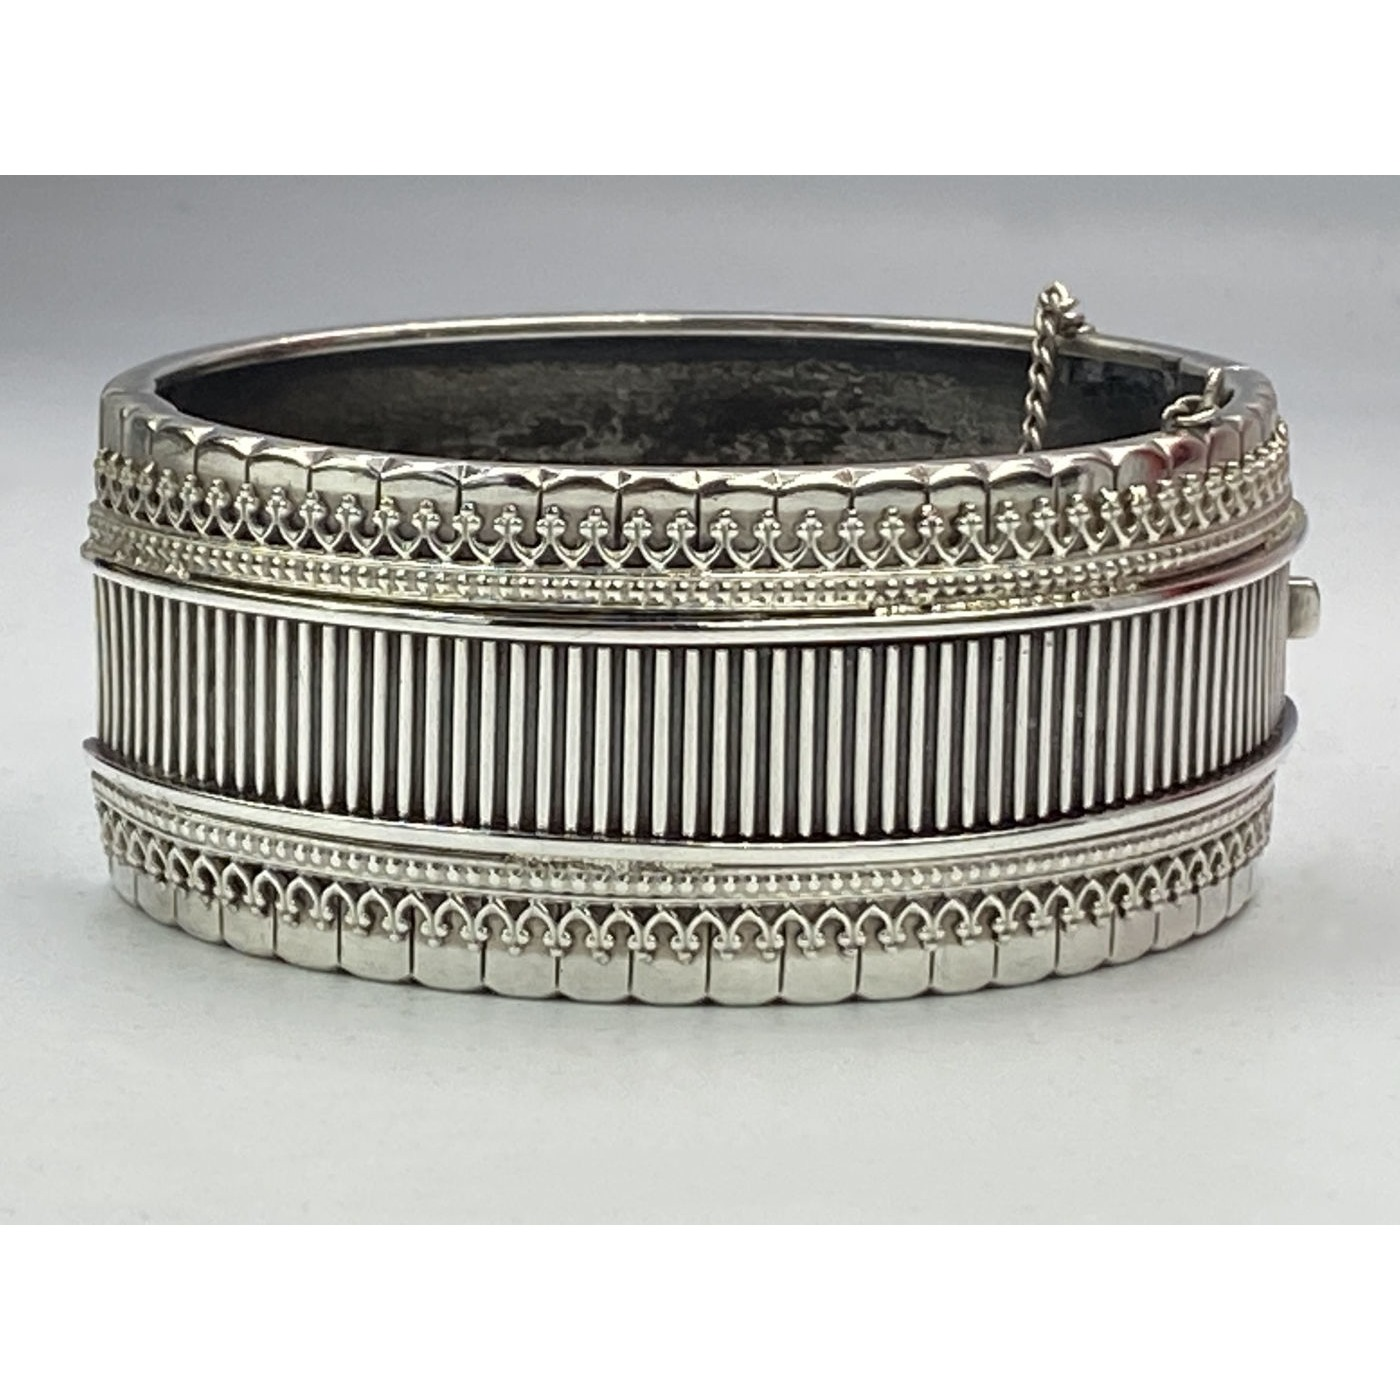 Fabulous Larger than Average Gallery Wire, Vertical Rib Antique English Silver Bangle